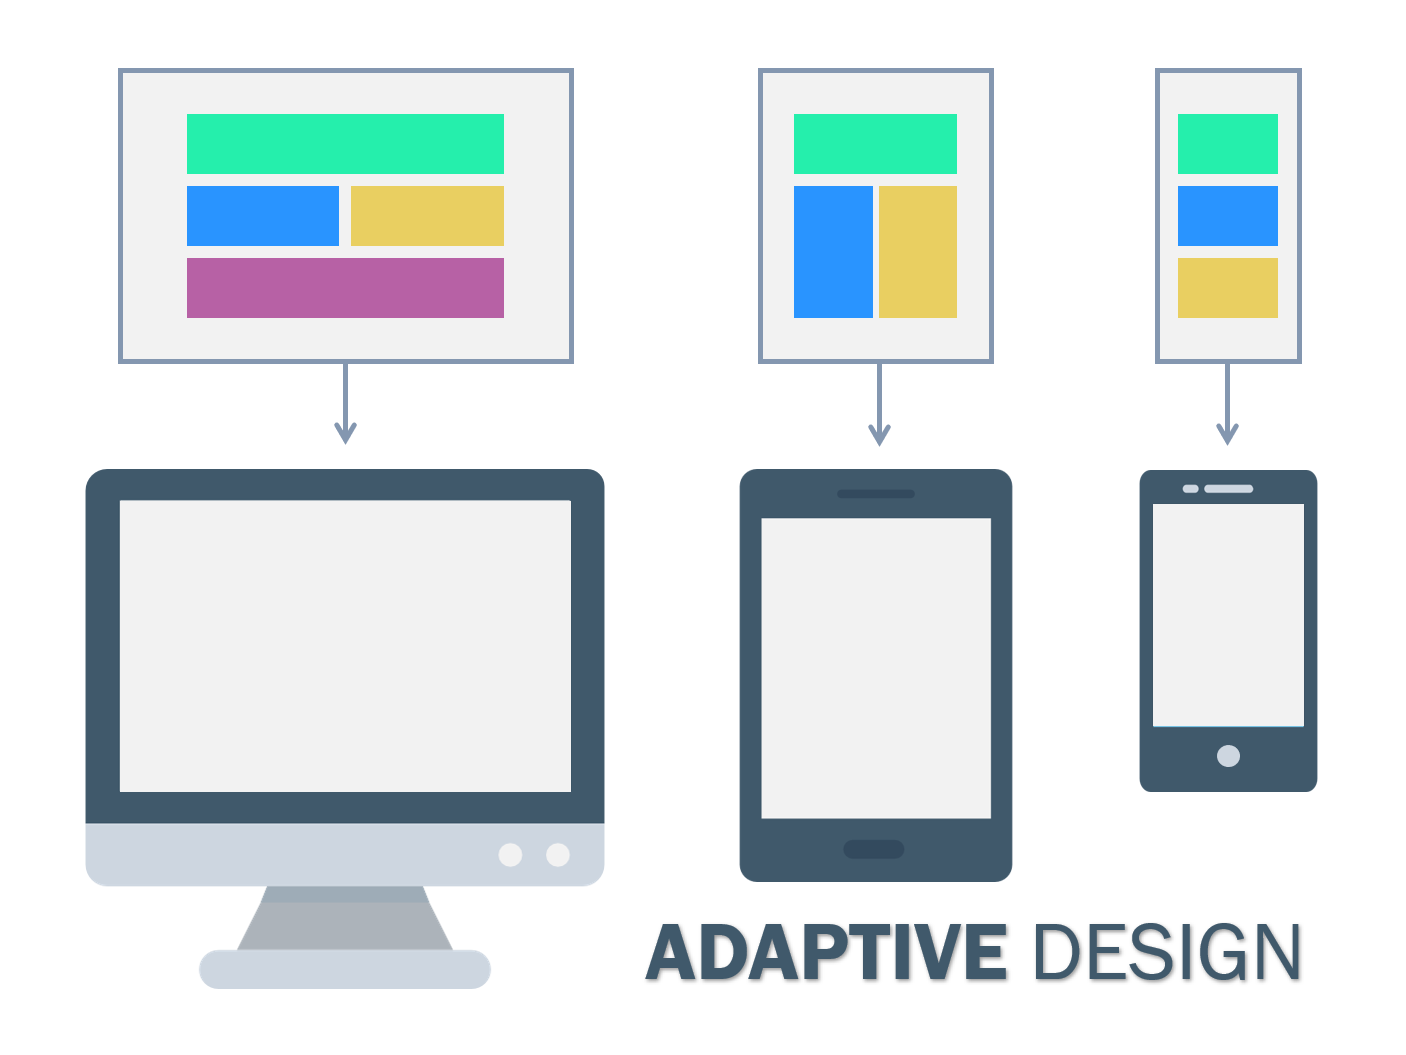 Adaptive Design One Codebase Fitting in All Screen Sizes